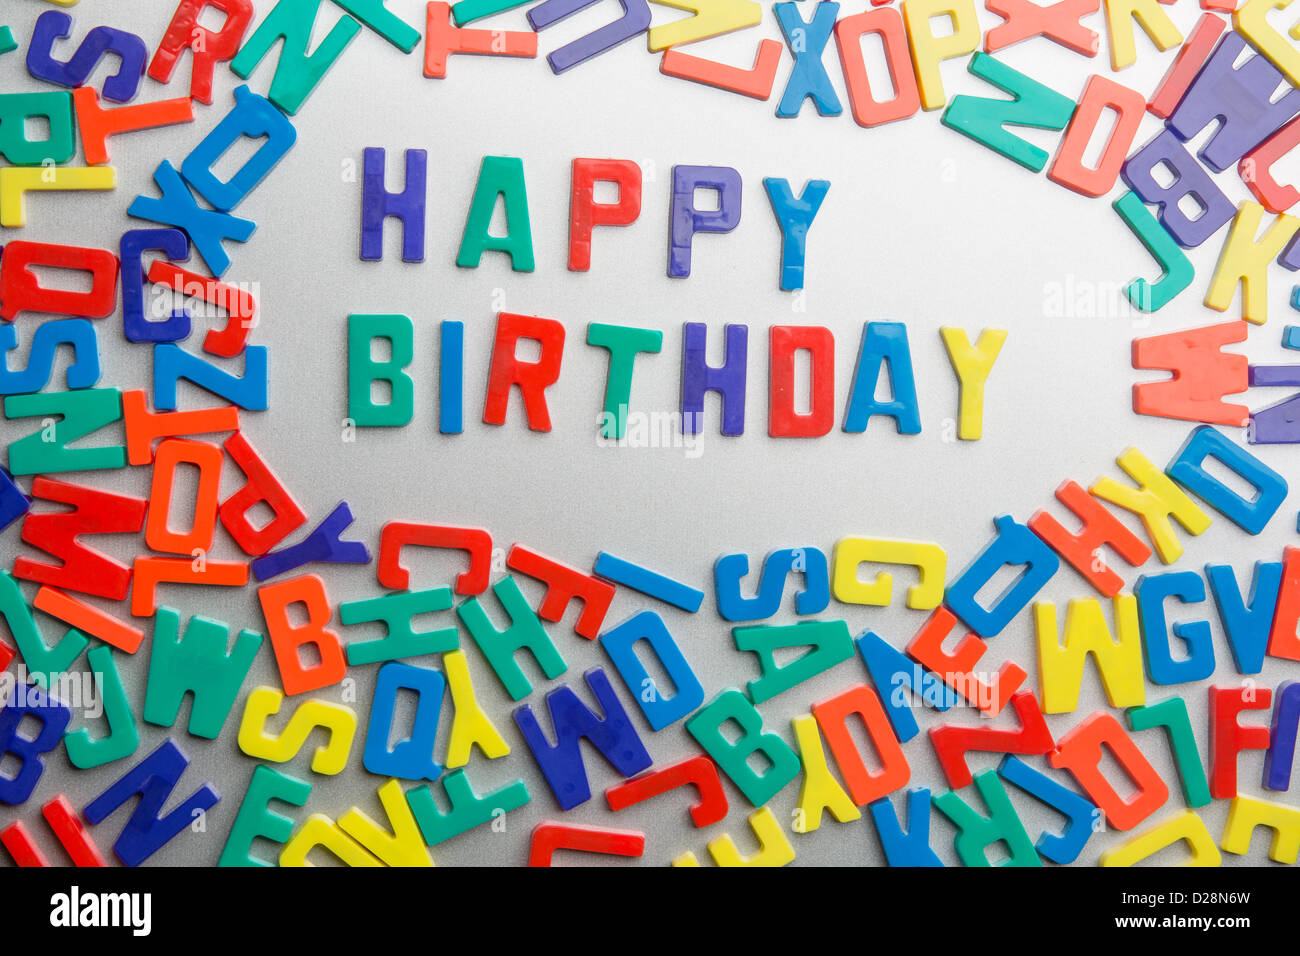 Happy Birthday Refrigerator Magnets Spell A Message Out Of A